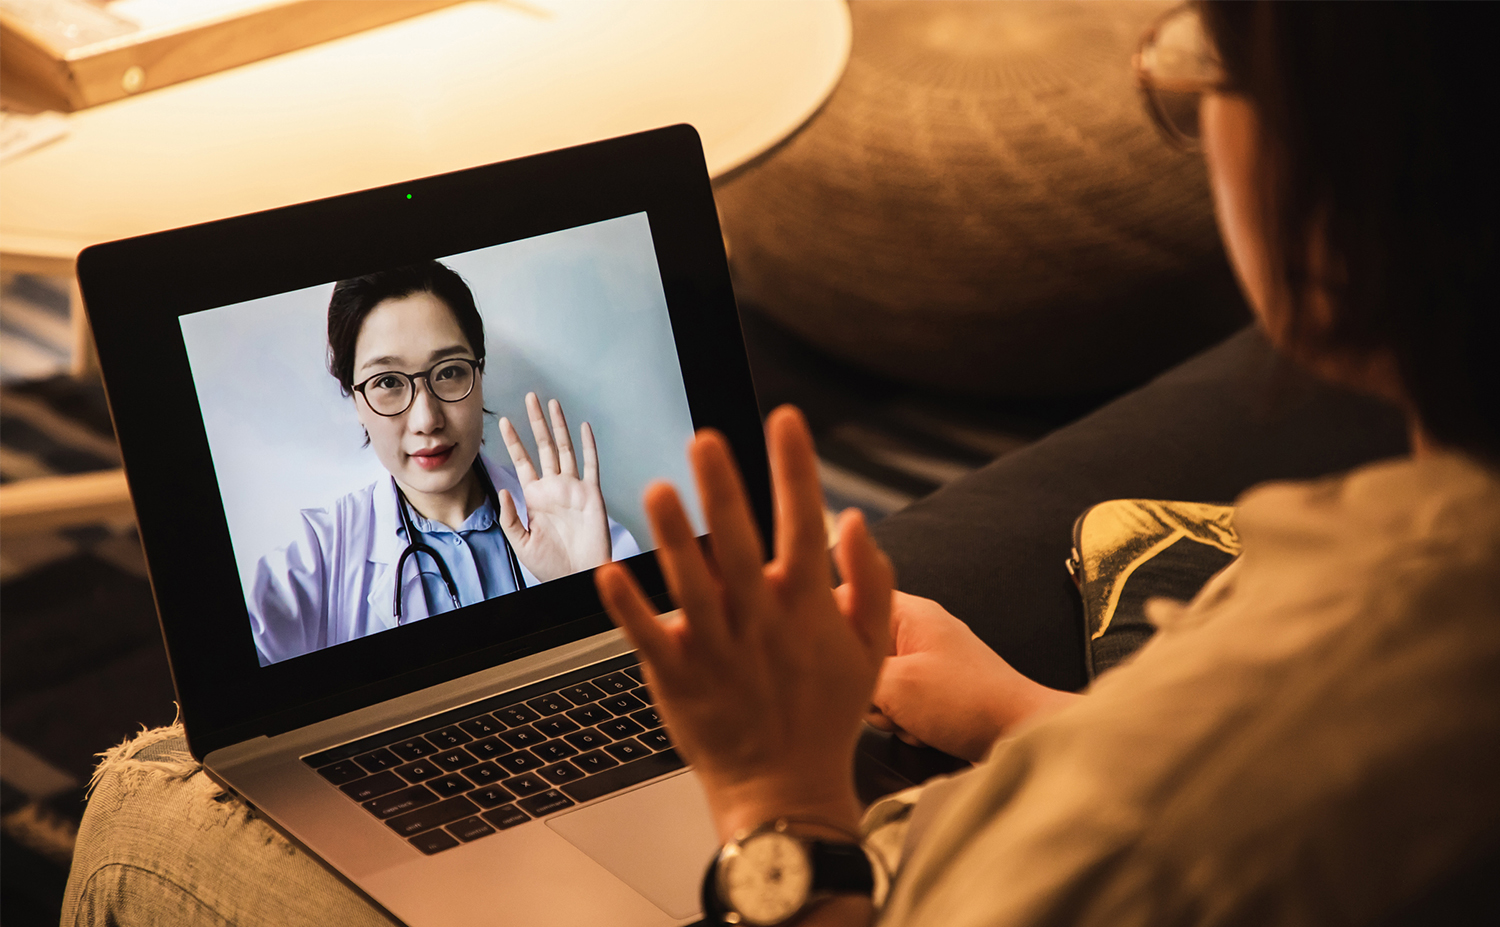 Congressional action is needed for telehealth not to return to a rural benefit, Seema Verma says